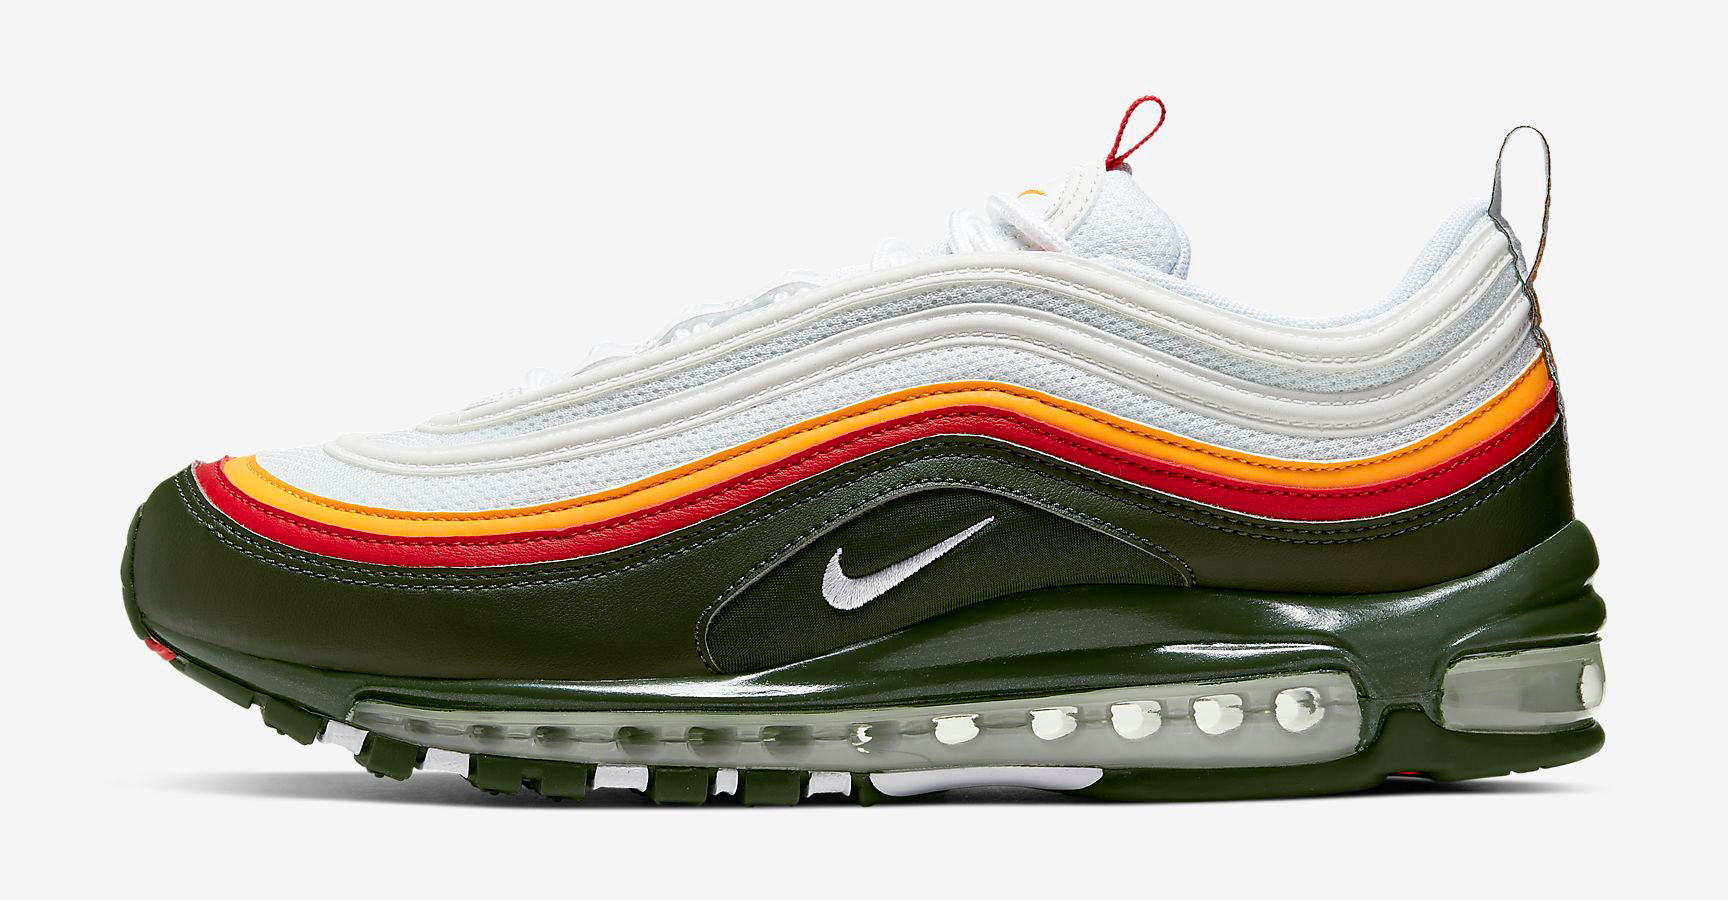 nike-air-max-97-evergreen-red-gold-release-date